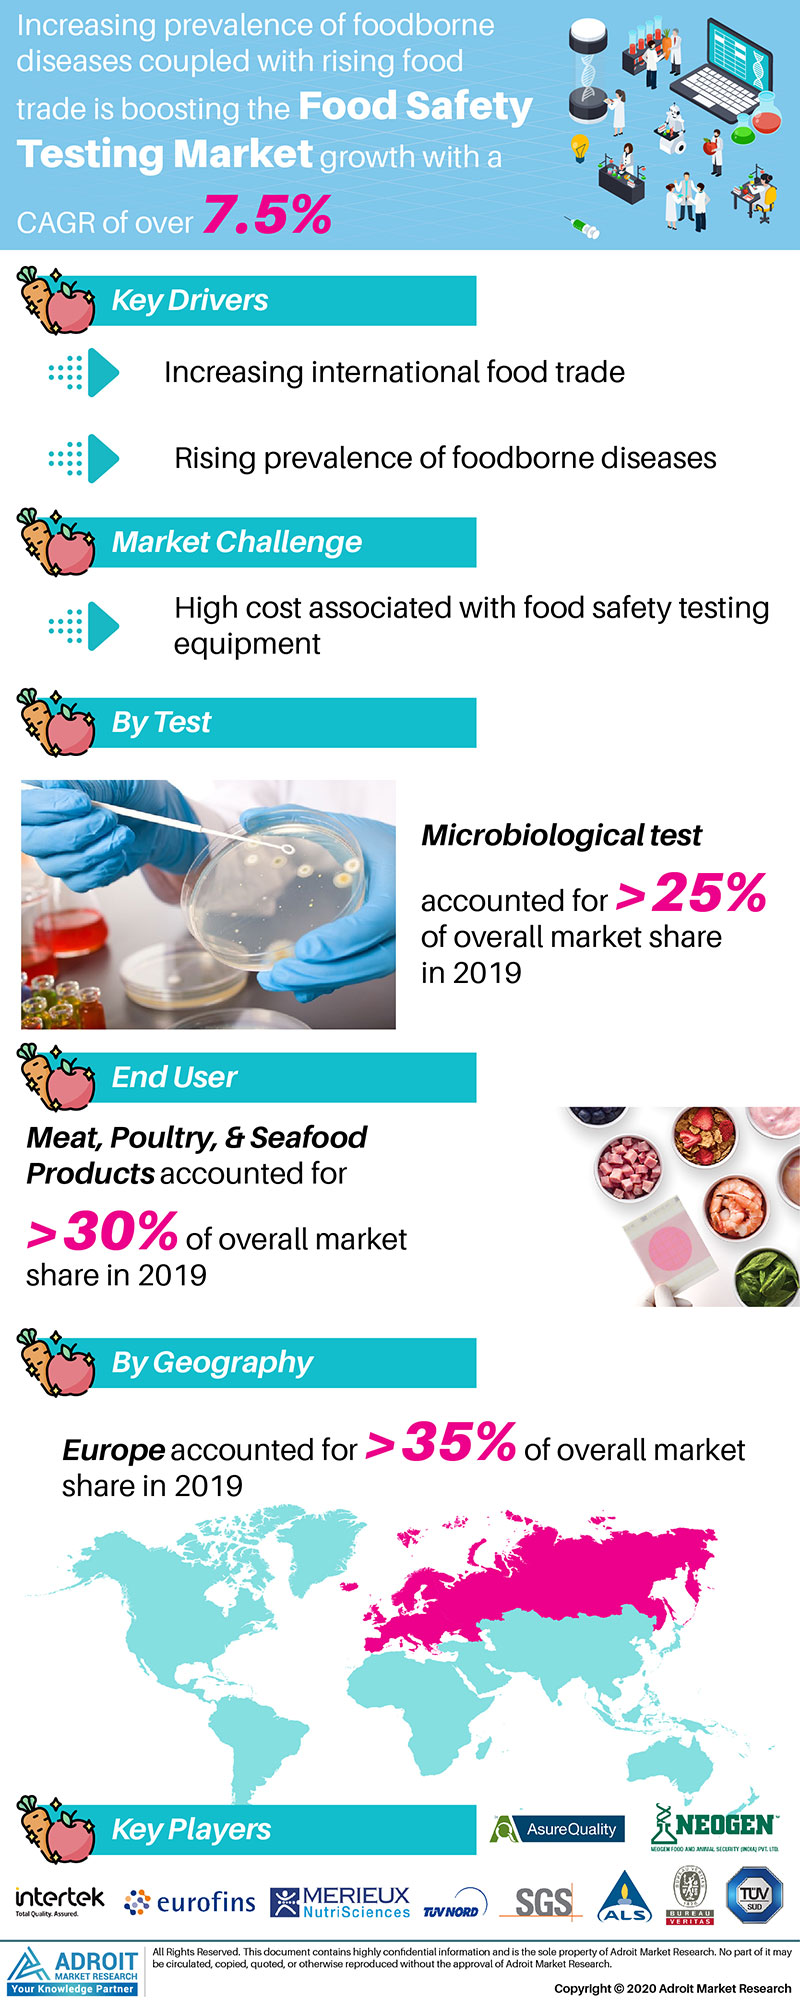 Food Safety Testing Market Size 2017 By Application, Product, Region and Forecast 2019 to 2025